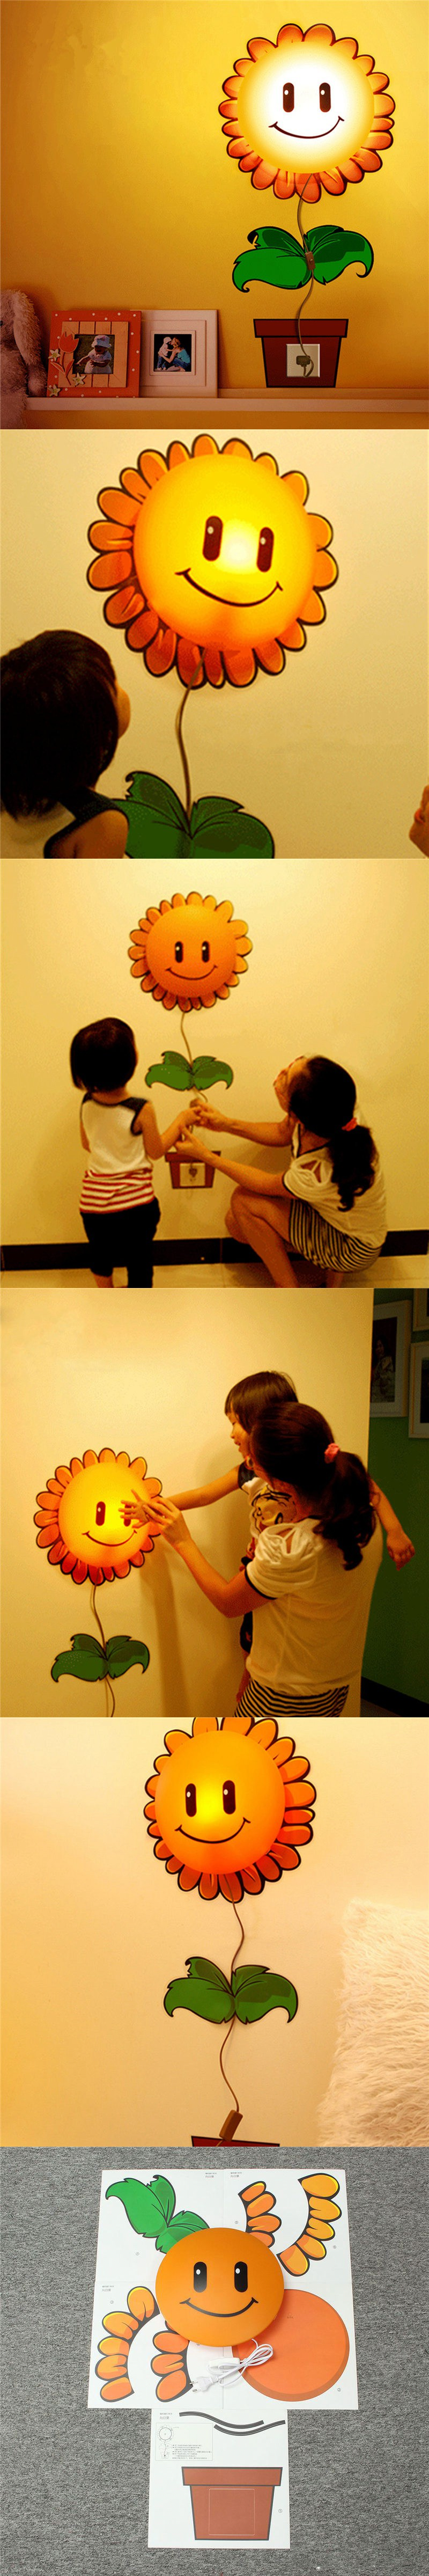 3D DIY Cute Sunflower Cartoon LED Wallpaper Lamp Light Wall Sticker ...